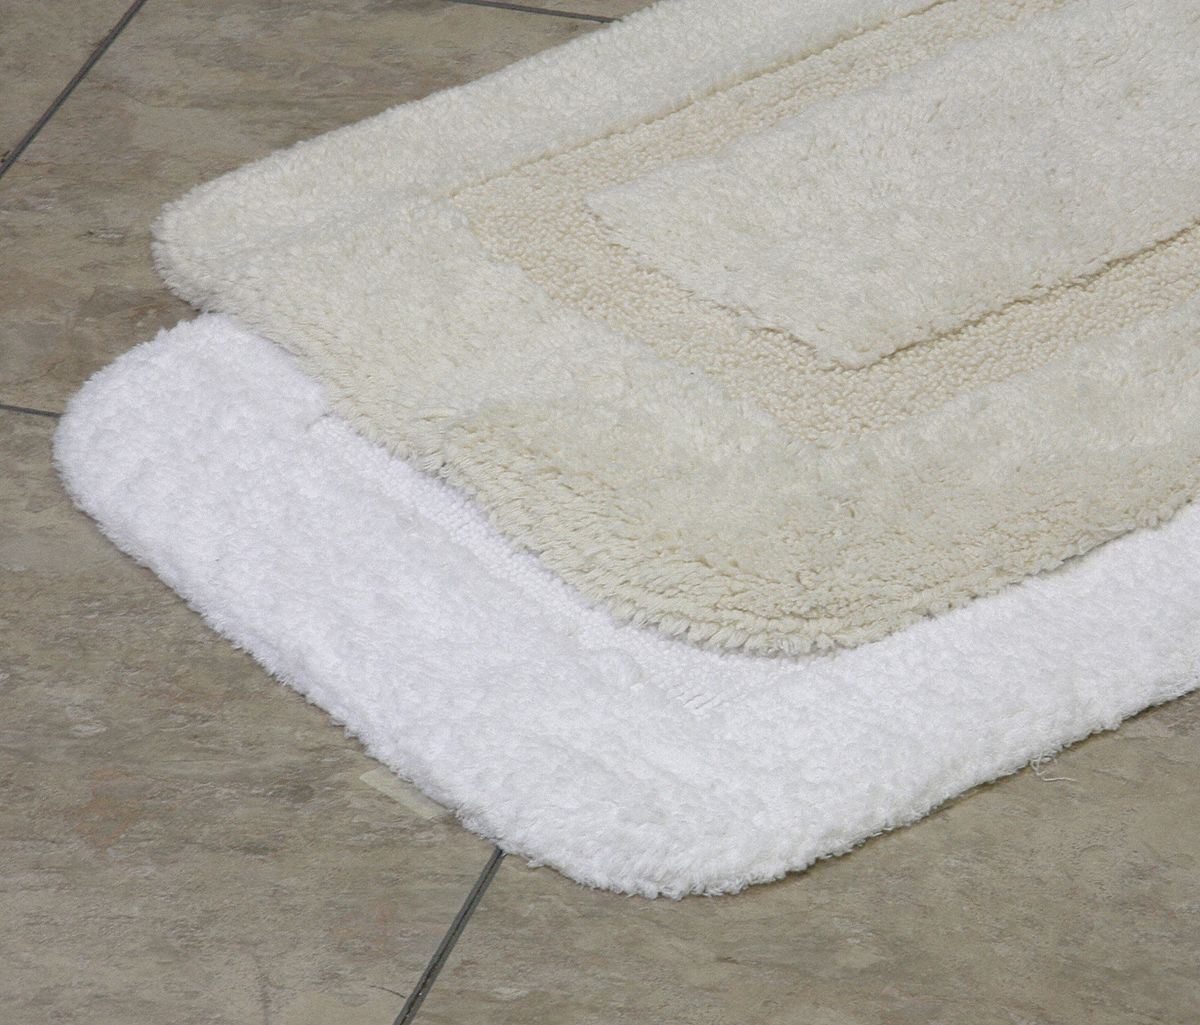 Bath Rug,  Elite Loop,  21 in Width,  34 in Length,  White,  Cotton